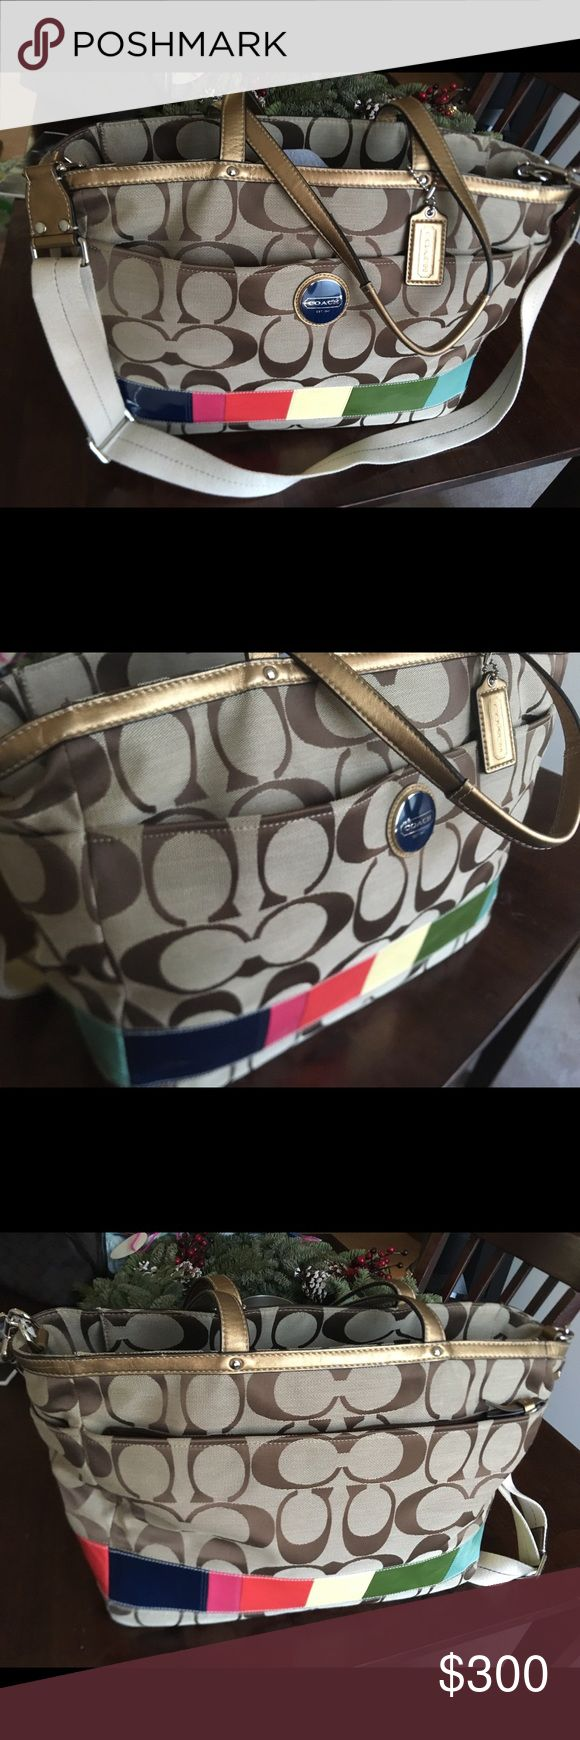 Authentic - Coach Signature Travel Bag 💖 Beautiful brand new Coach bag I got for Christmas one year and never used it once. Older classic style. It can be used for a Laptop bag for traveling, diaper bag, and a purse.. Or all 3! Please no lowballers as this is an amazing deal for a bag like this and never used. Its been closet hopping since it's bigger and I never used it. I just want someone to love on it!     I am also open for trades for MK or Kate Spade or Burberry. Coach Bags